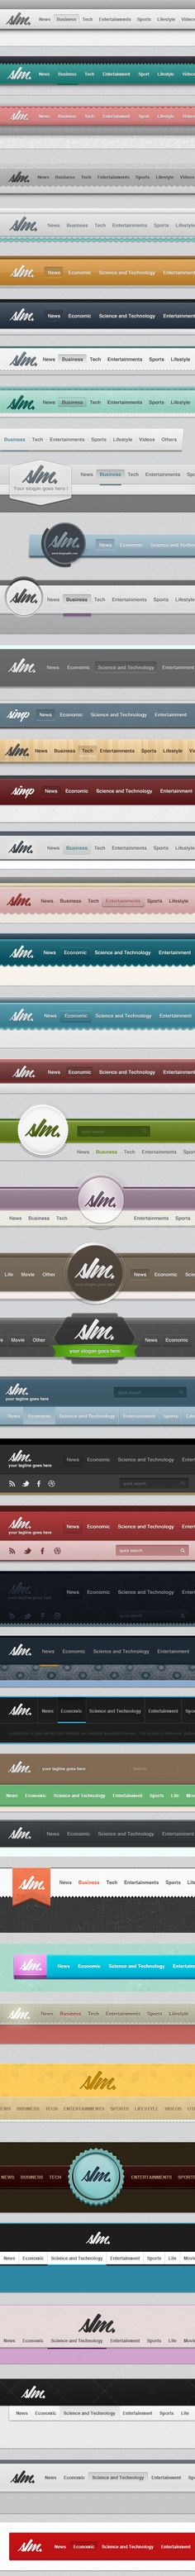 Navigation bars for days! There are a LOT of ideas here that just can't be… Graphic Design Tools, Tool Design, Design Projects, Ui Elements, Design Elements, Branding, Wedding Website Design, Header Design, Navigation Bar